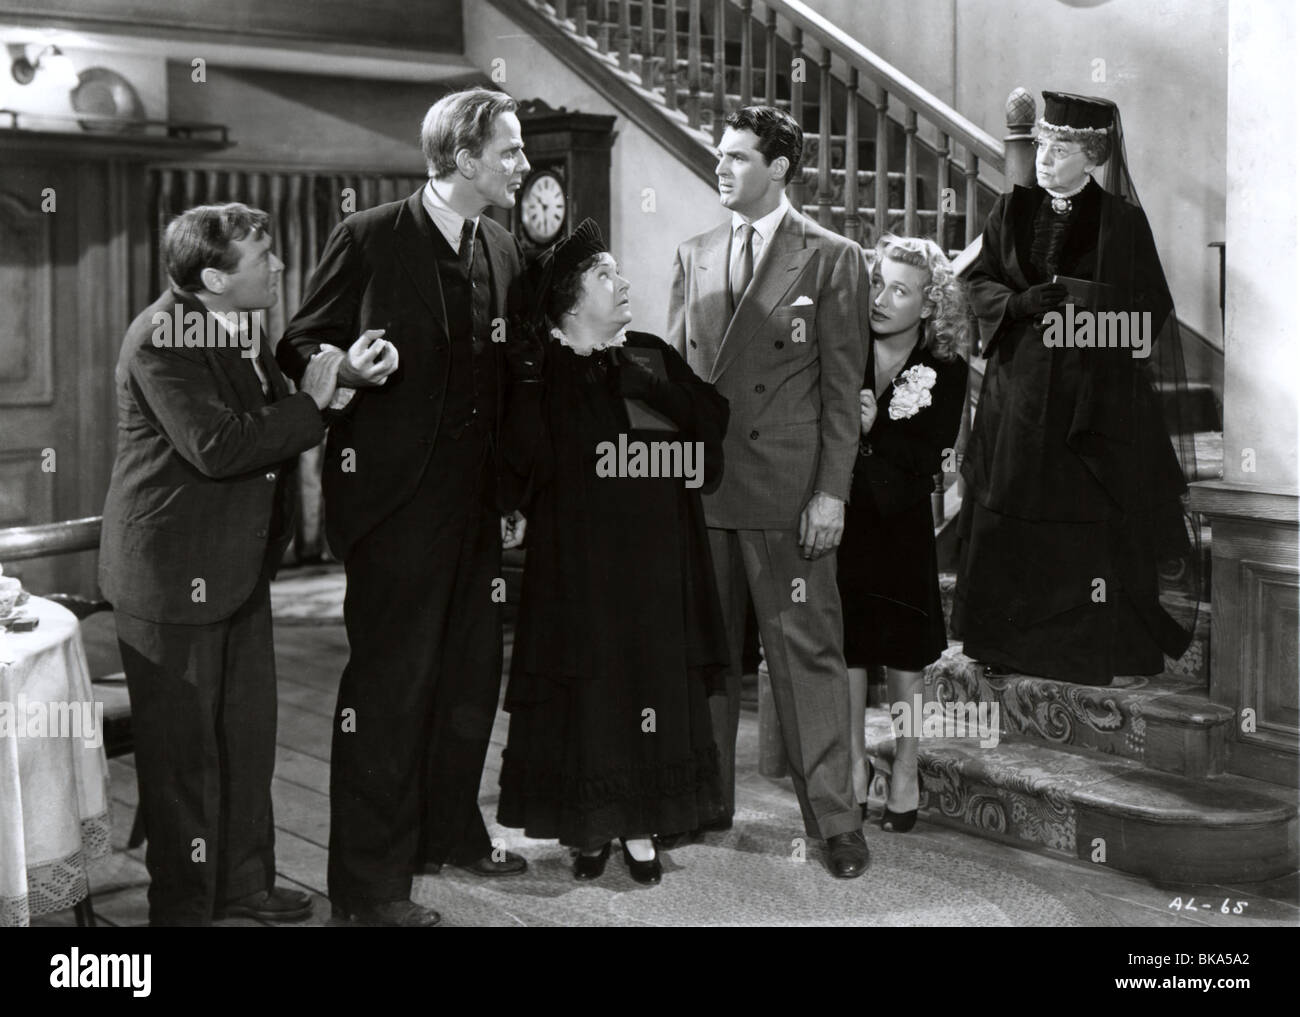 ARSENIC AND OLD LACE (1944) PETER LORRE, RAYMOND MASSEY, JOSEPHINE HULL, CARY GRANT, PRISCILLA LANE, JEAN ADAIR - Stock Image